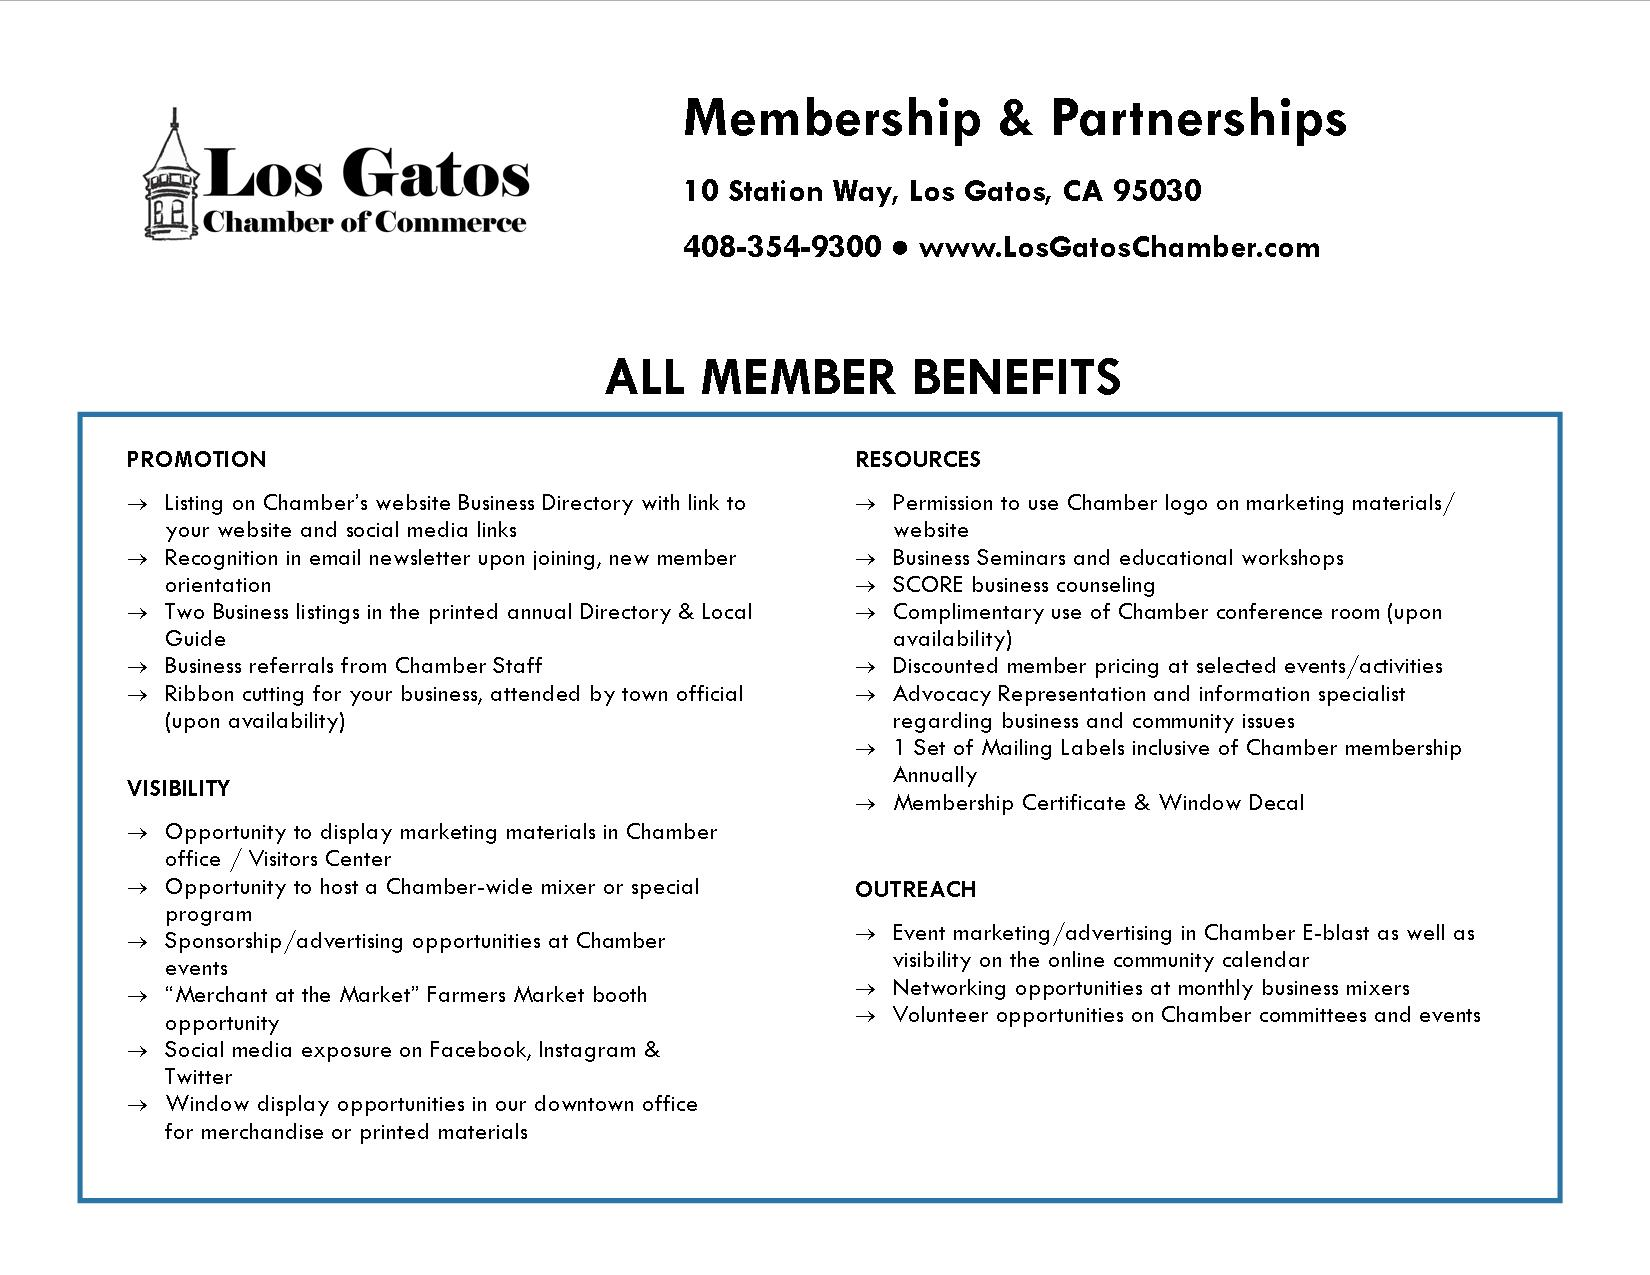 Membership-Levels-2018-all-benefits.jpg